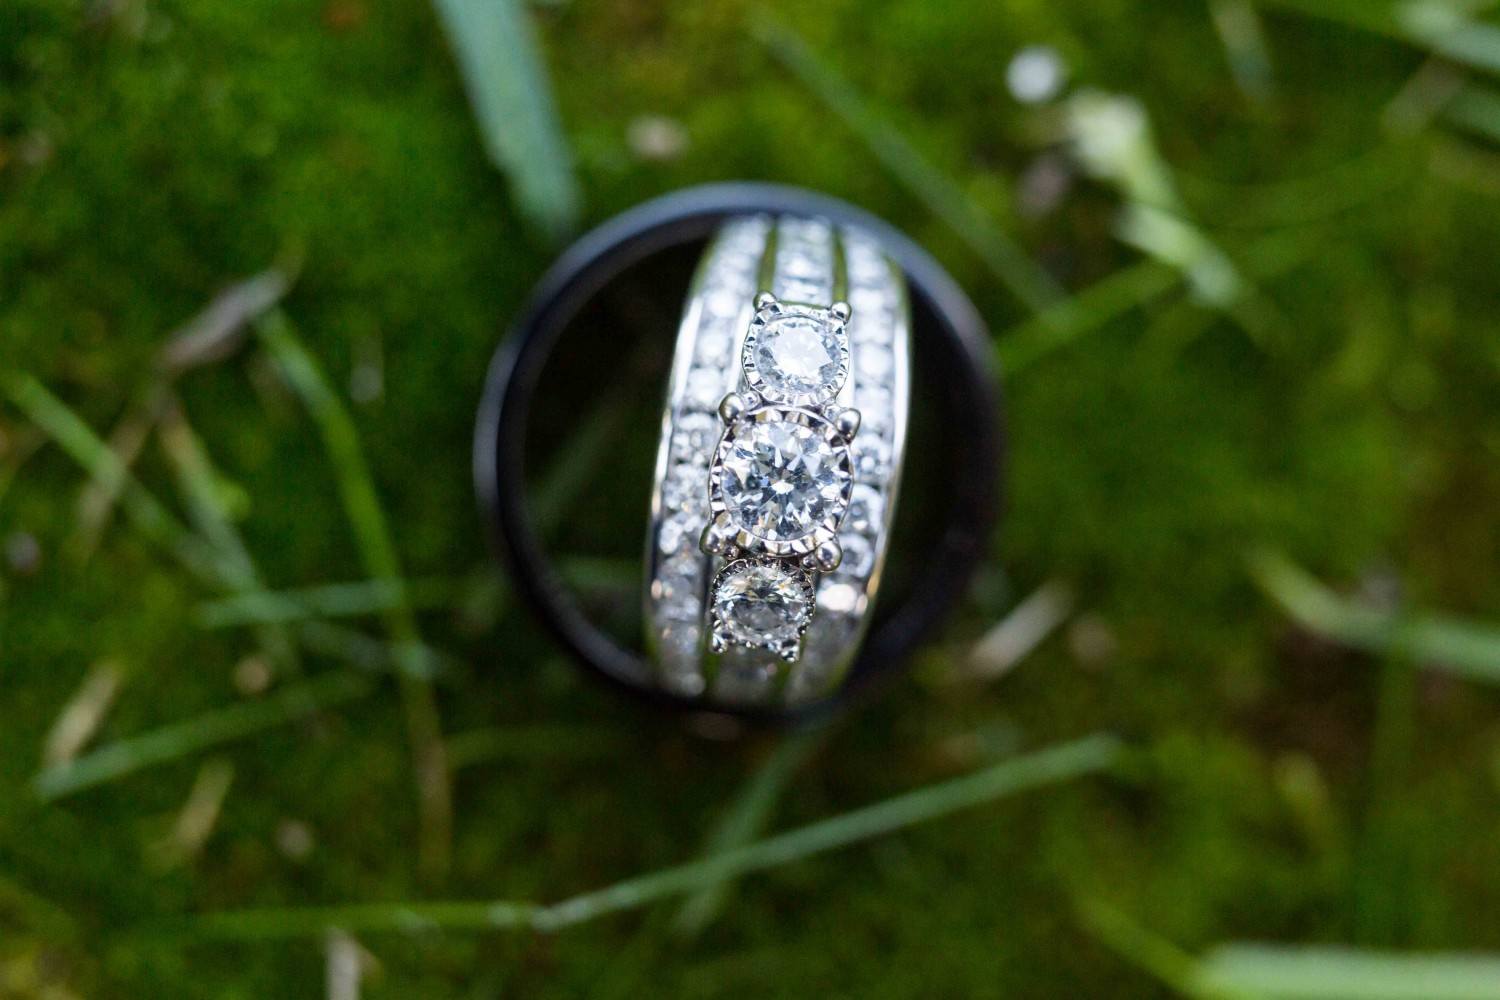 Bride and groom's ring on moss. Stunning wedding photography from Spokane.